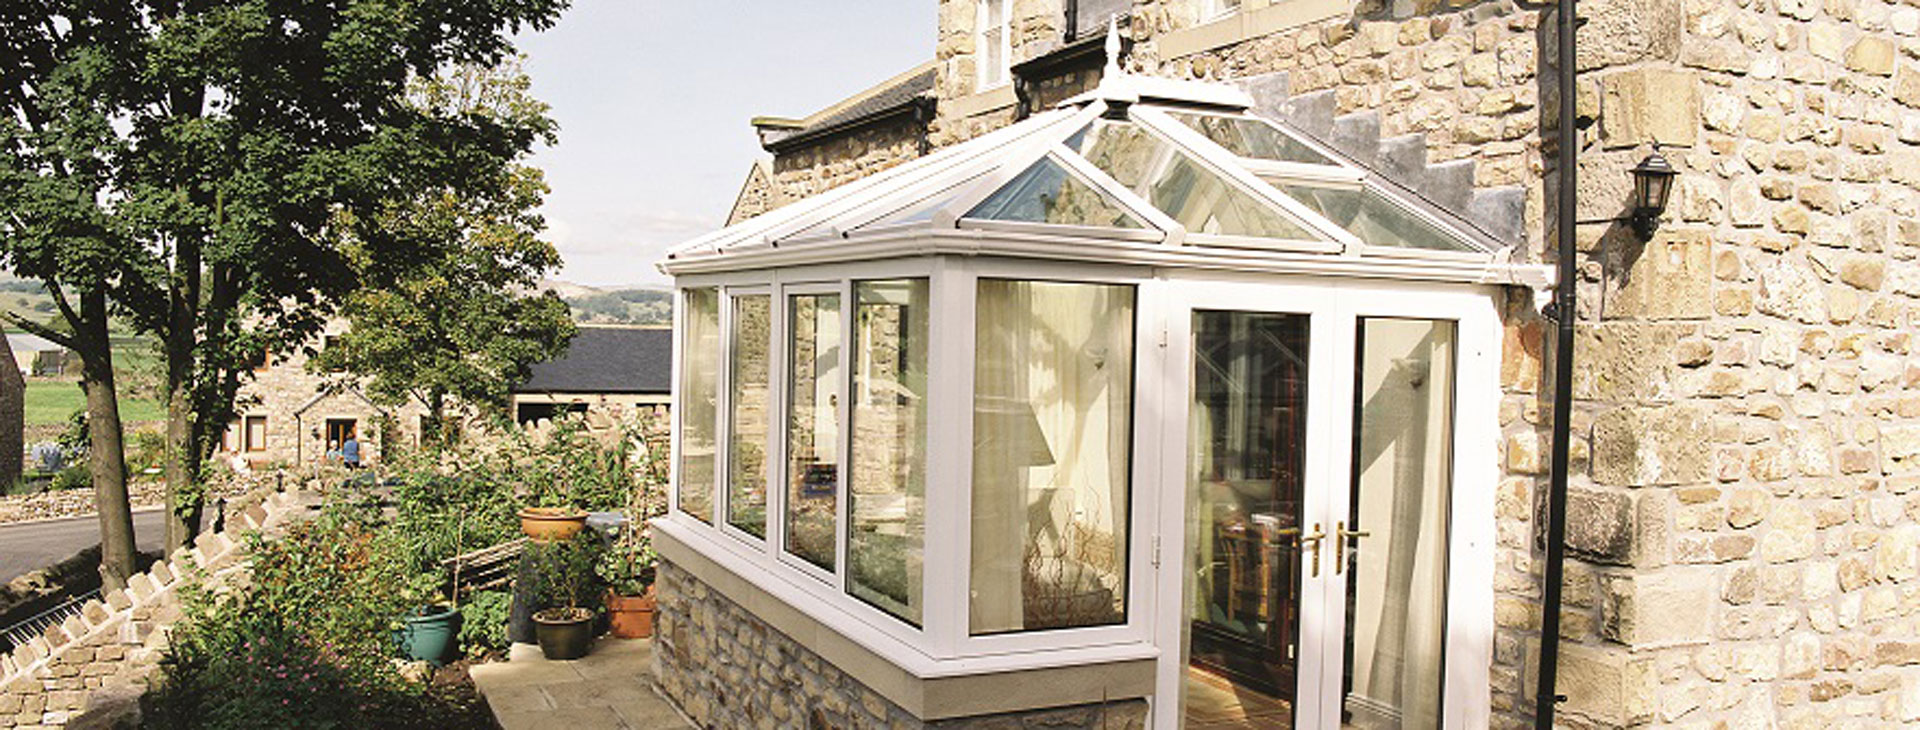 small-conservatory-1920x730